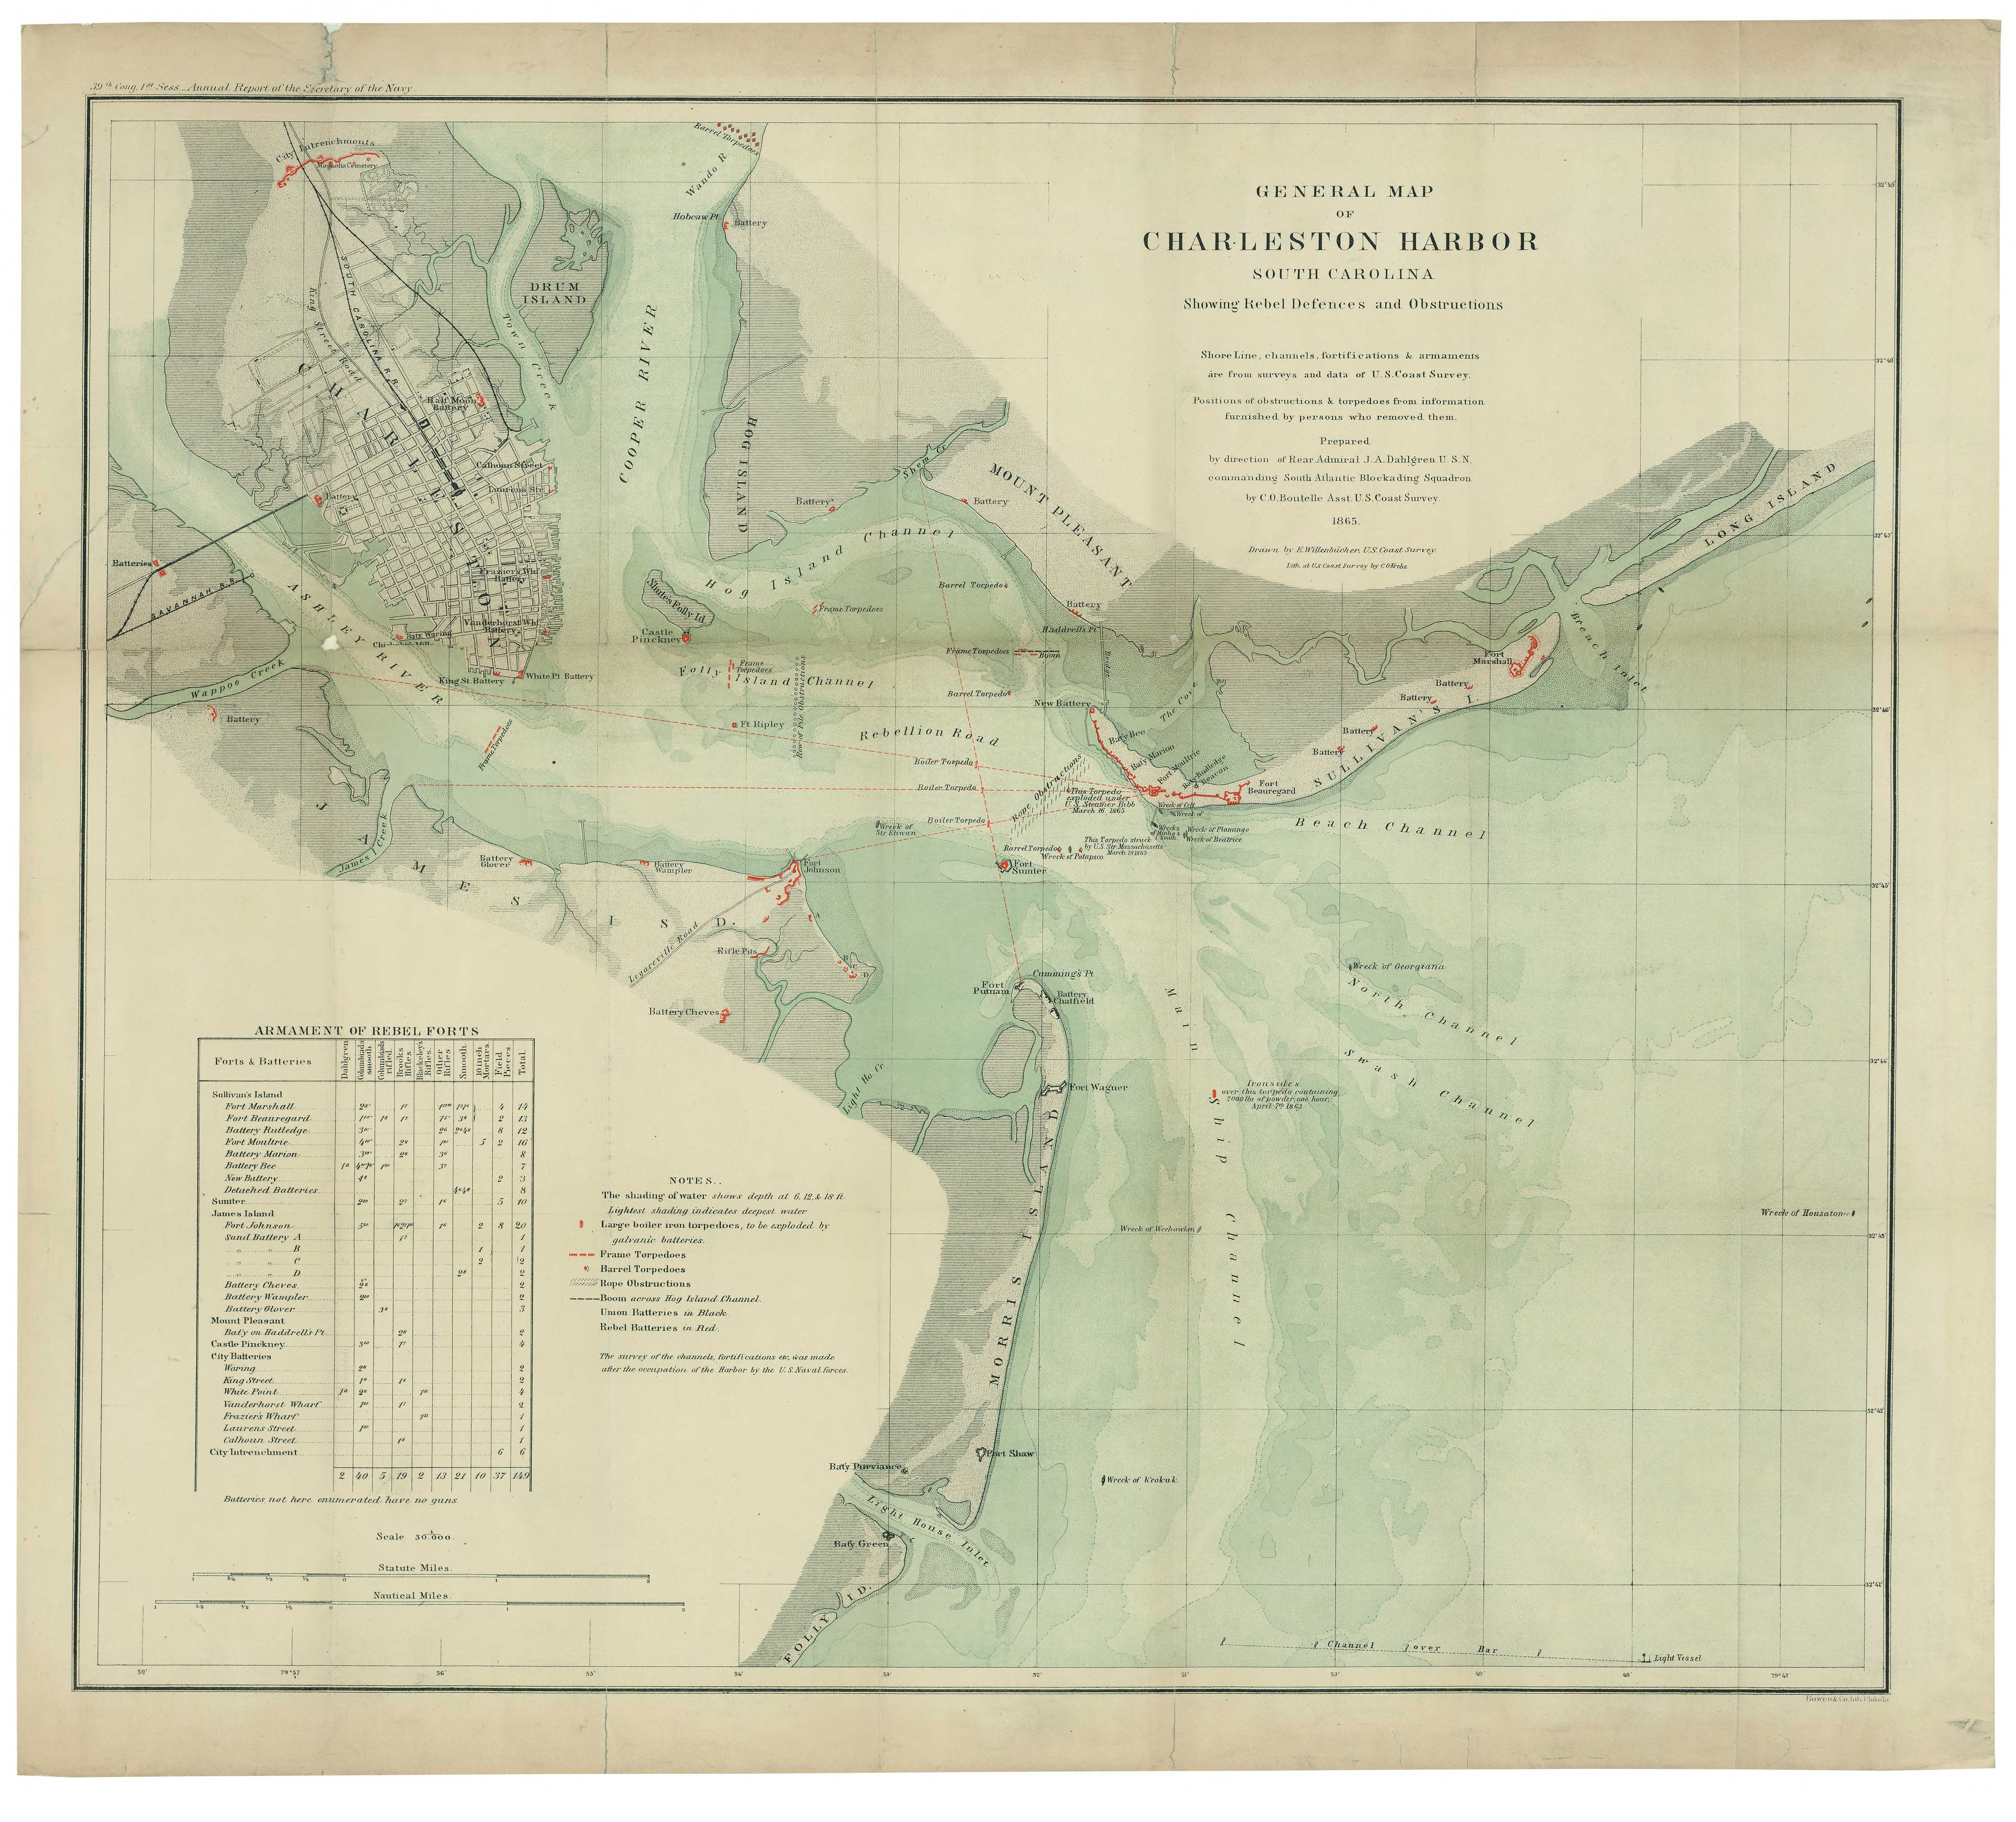 Charleston Harbor Being Mapped For Civil War Relics